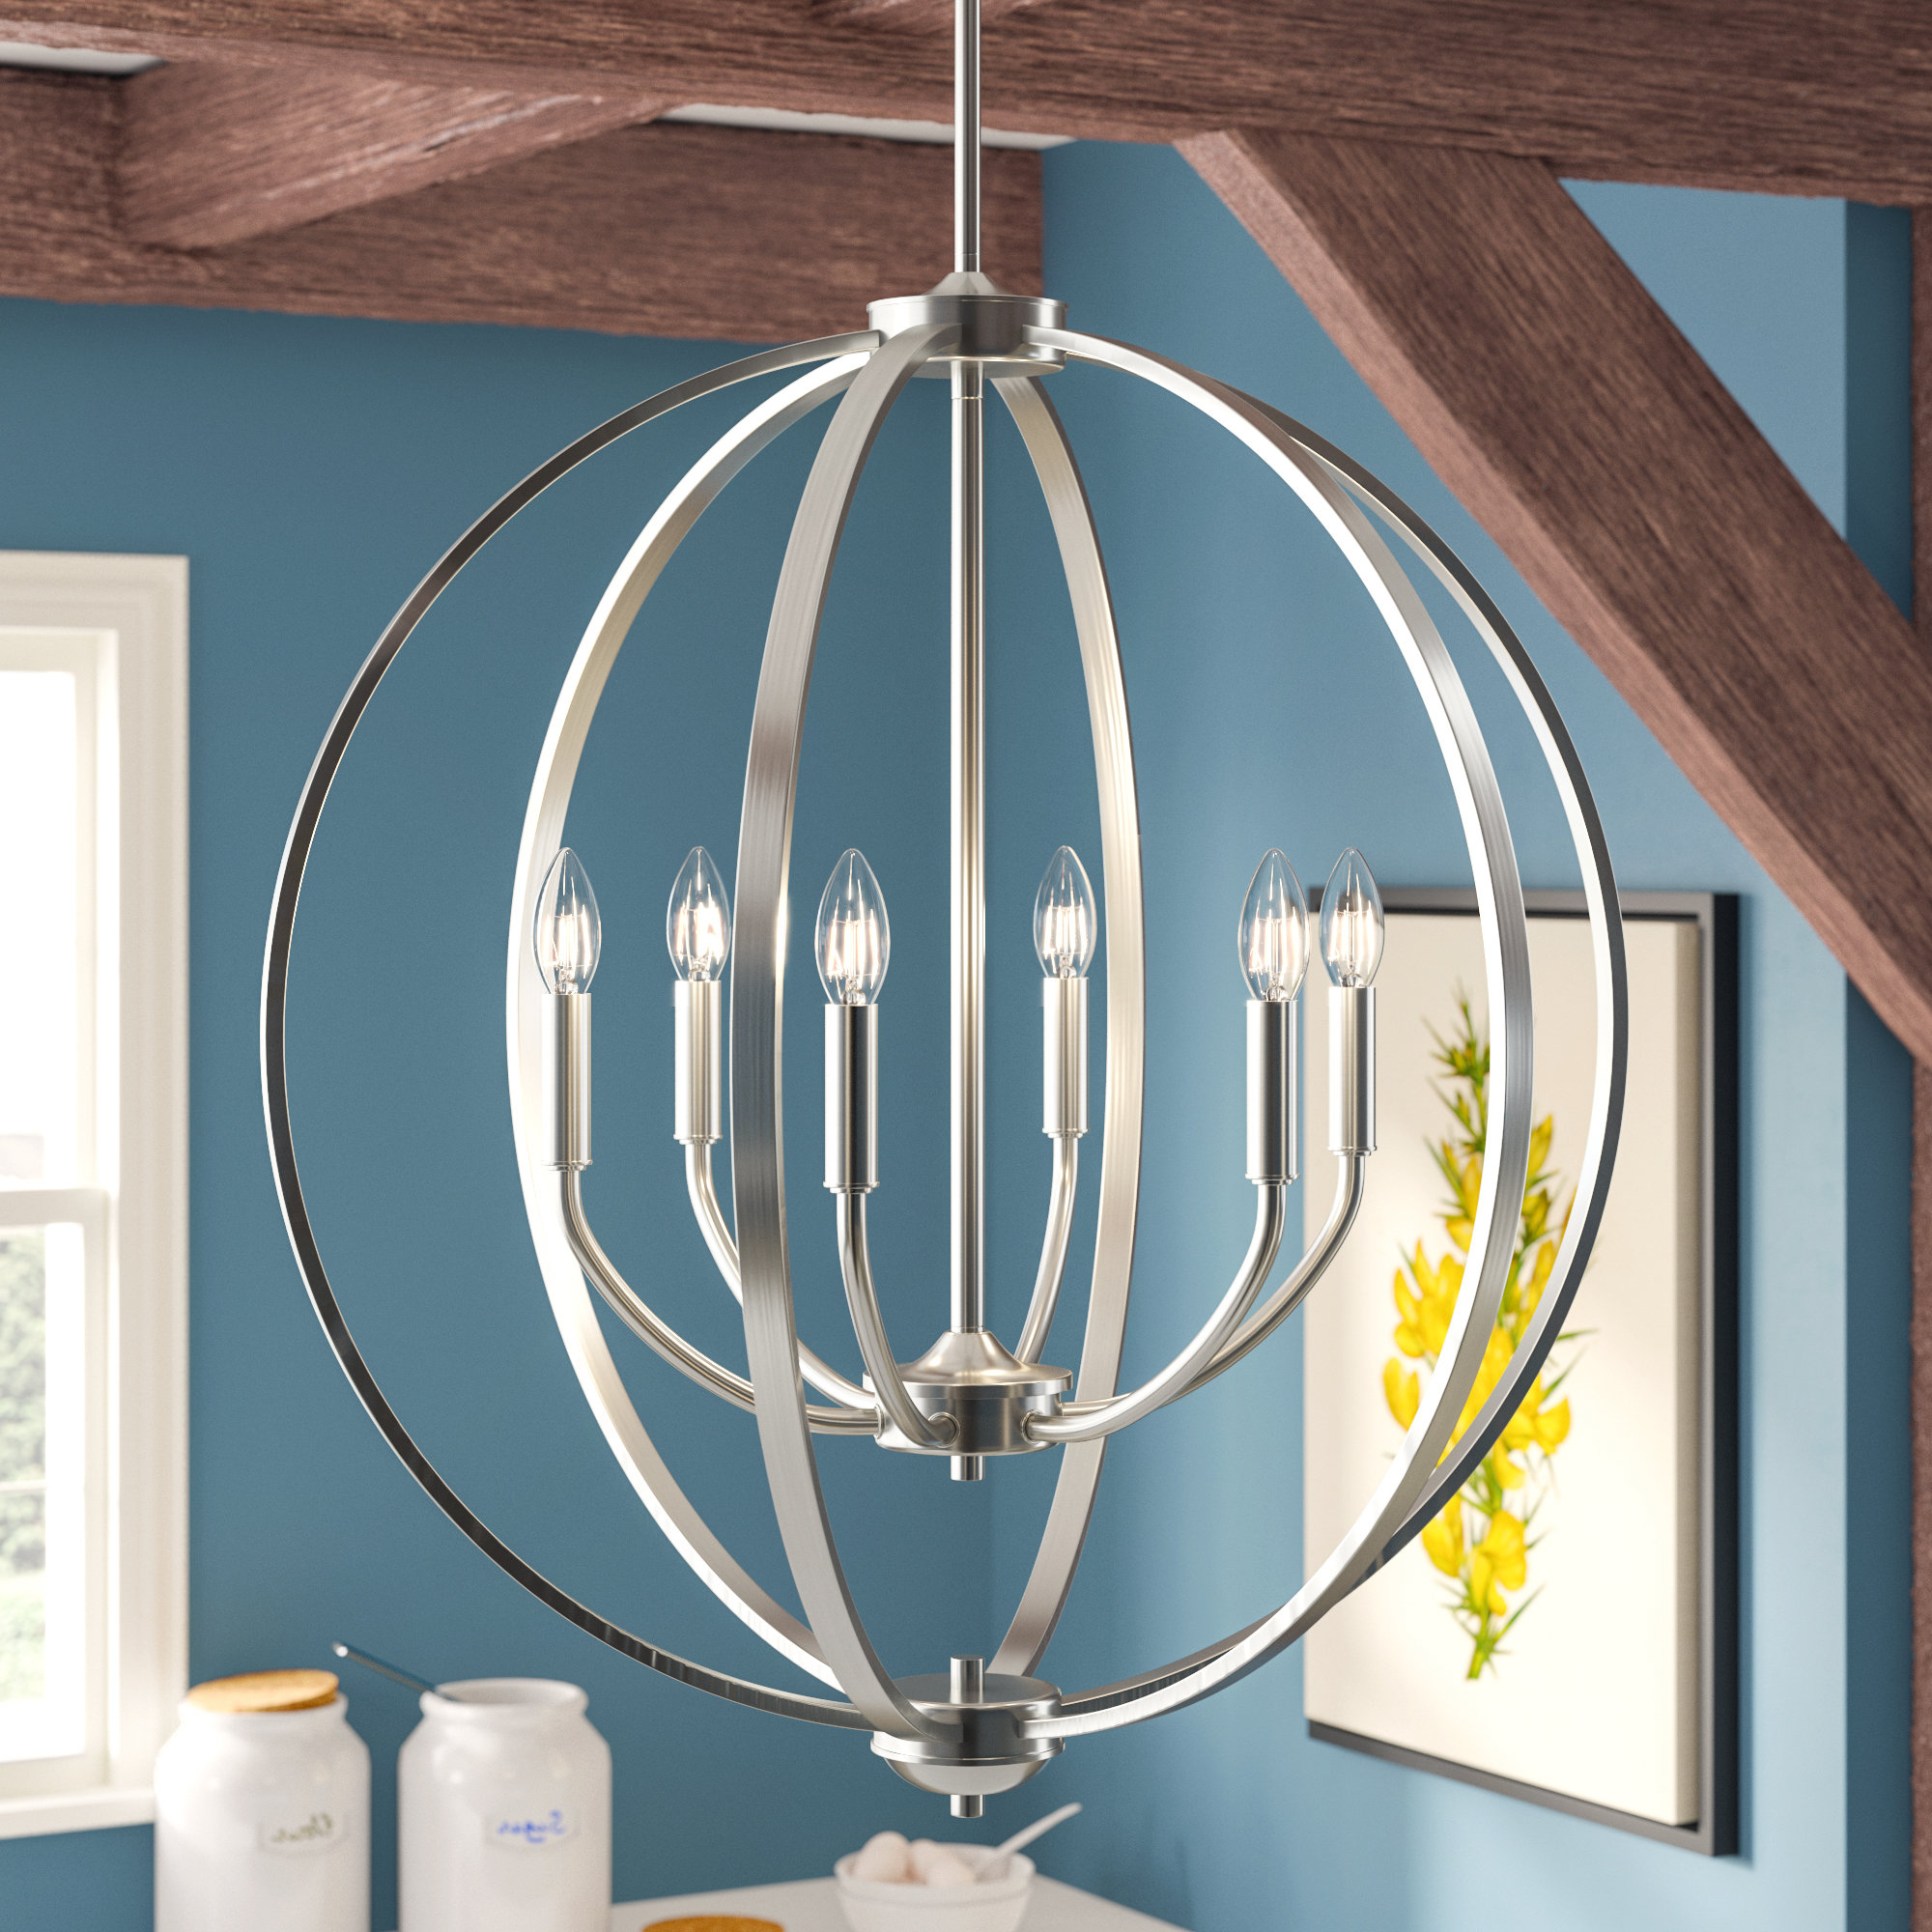 Current Gregoire 6 Light Globe Chandeliers With Regard To Earlene 6 Light Globe Chandelier (View 12 of 25)